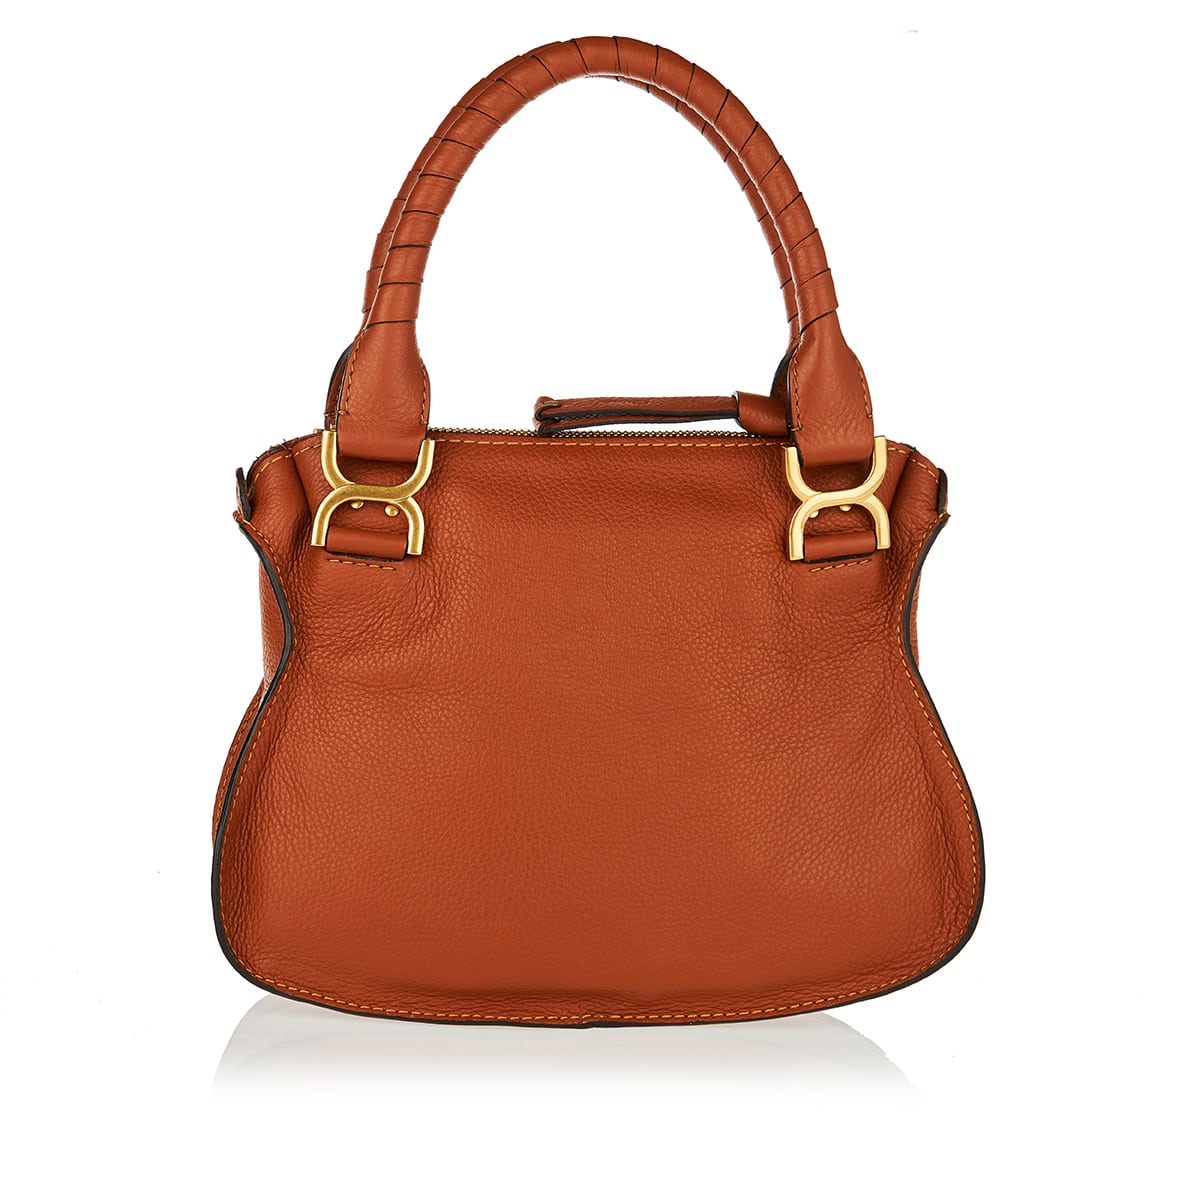 Marcie Small leather bag